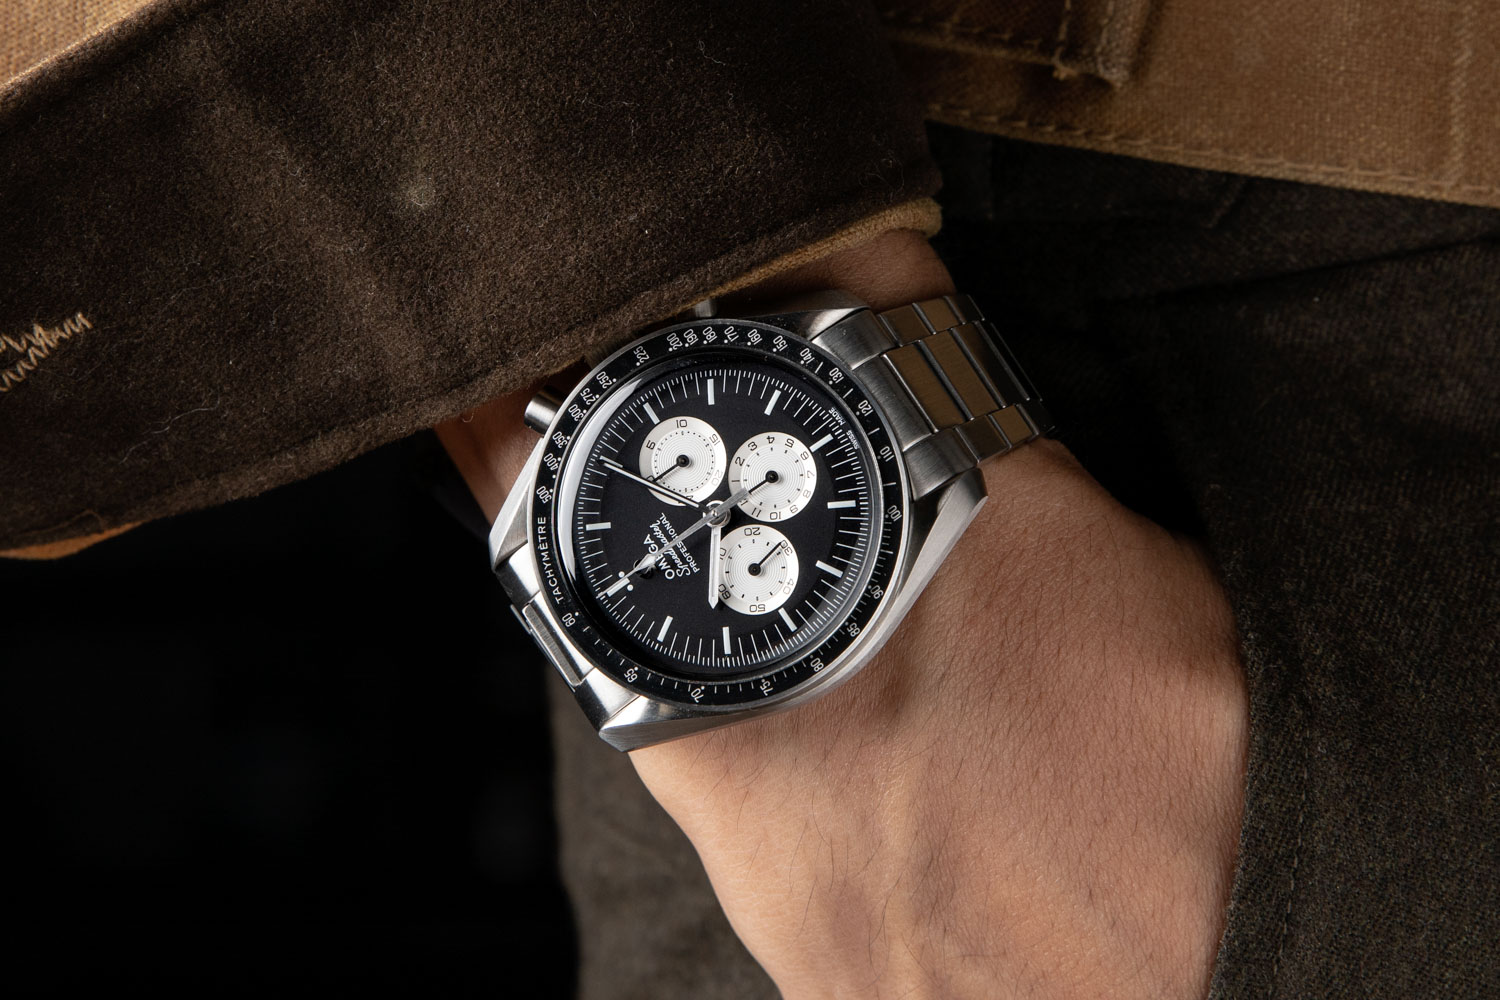 """The Speedmaster """"Speedy Tuesday"""" Limited Edition was launched by Omega on Instagram on January 10, 2017 in a limited run of 2012 pieces and sold out in 4 hours, 15 minutes and 43 seconds; here the watch is worn on a flat link bracelet from our friends at forstnerbands.com (©Revolution)"""